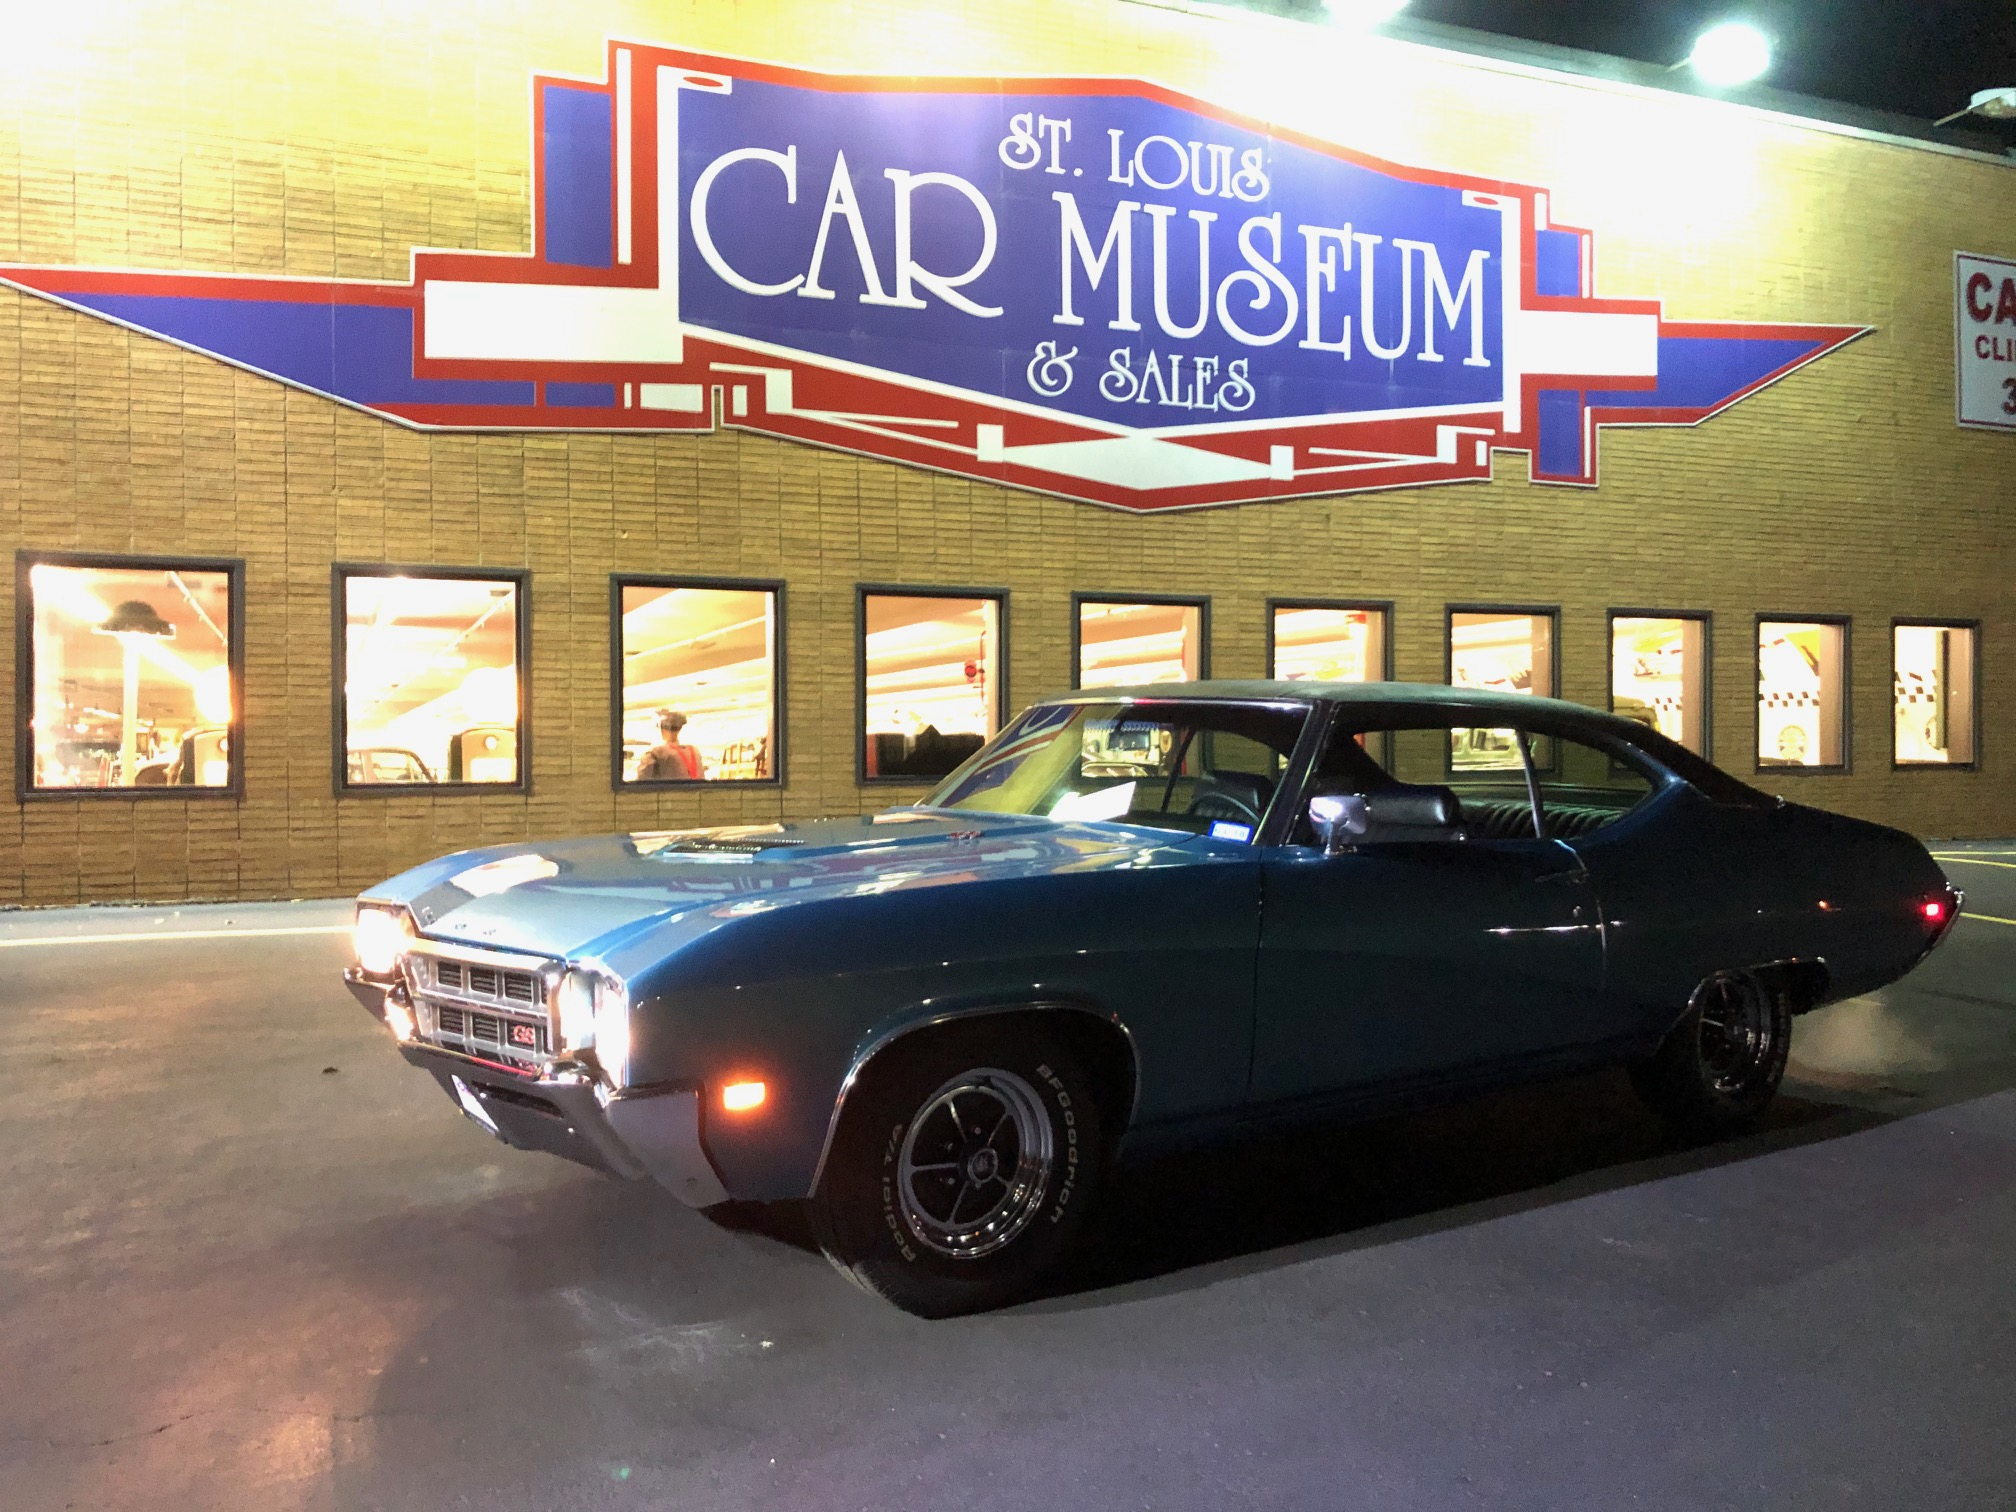 1969 Buick GS400 Hardtop sold at the St. Louis Car Museum